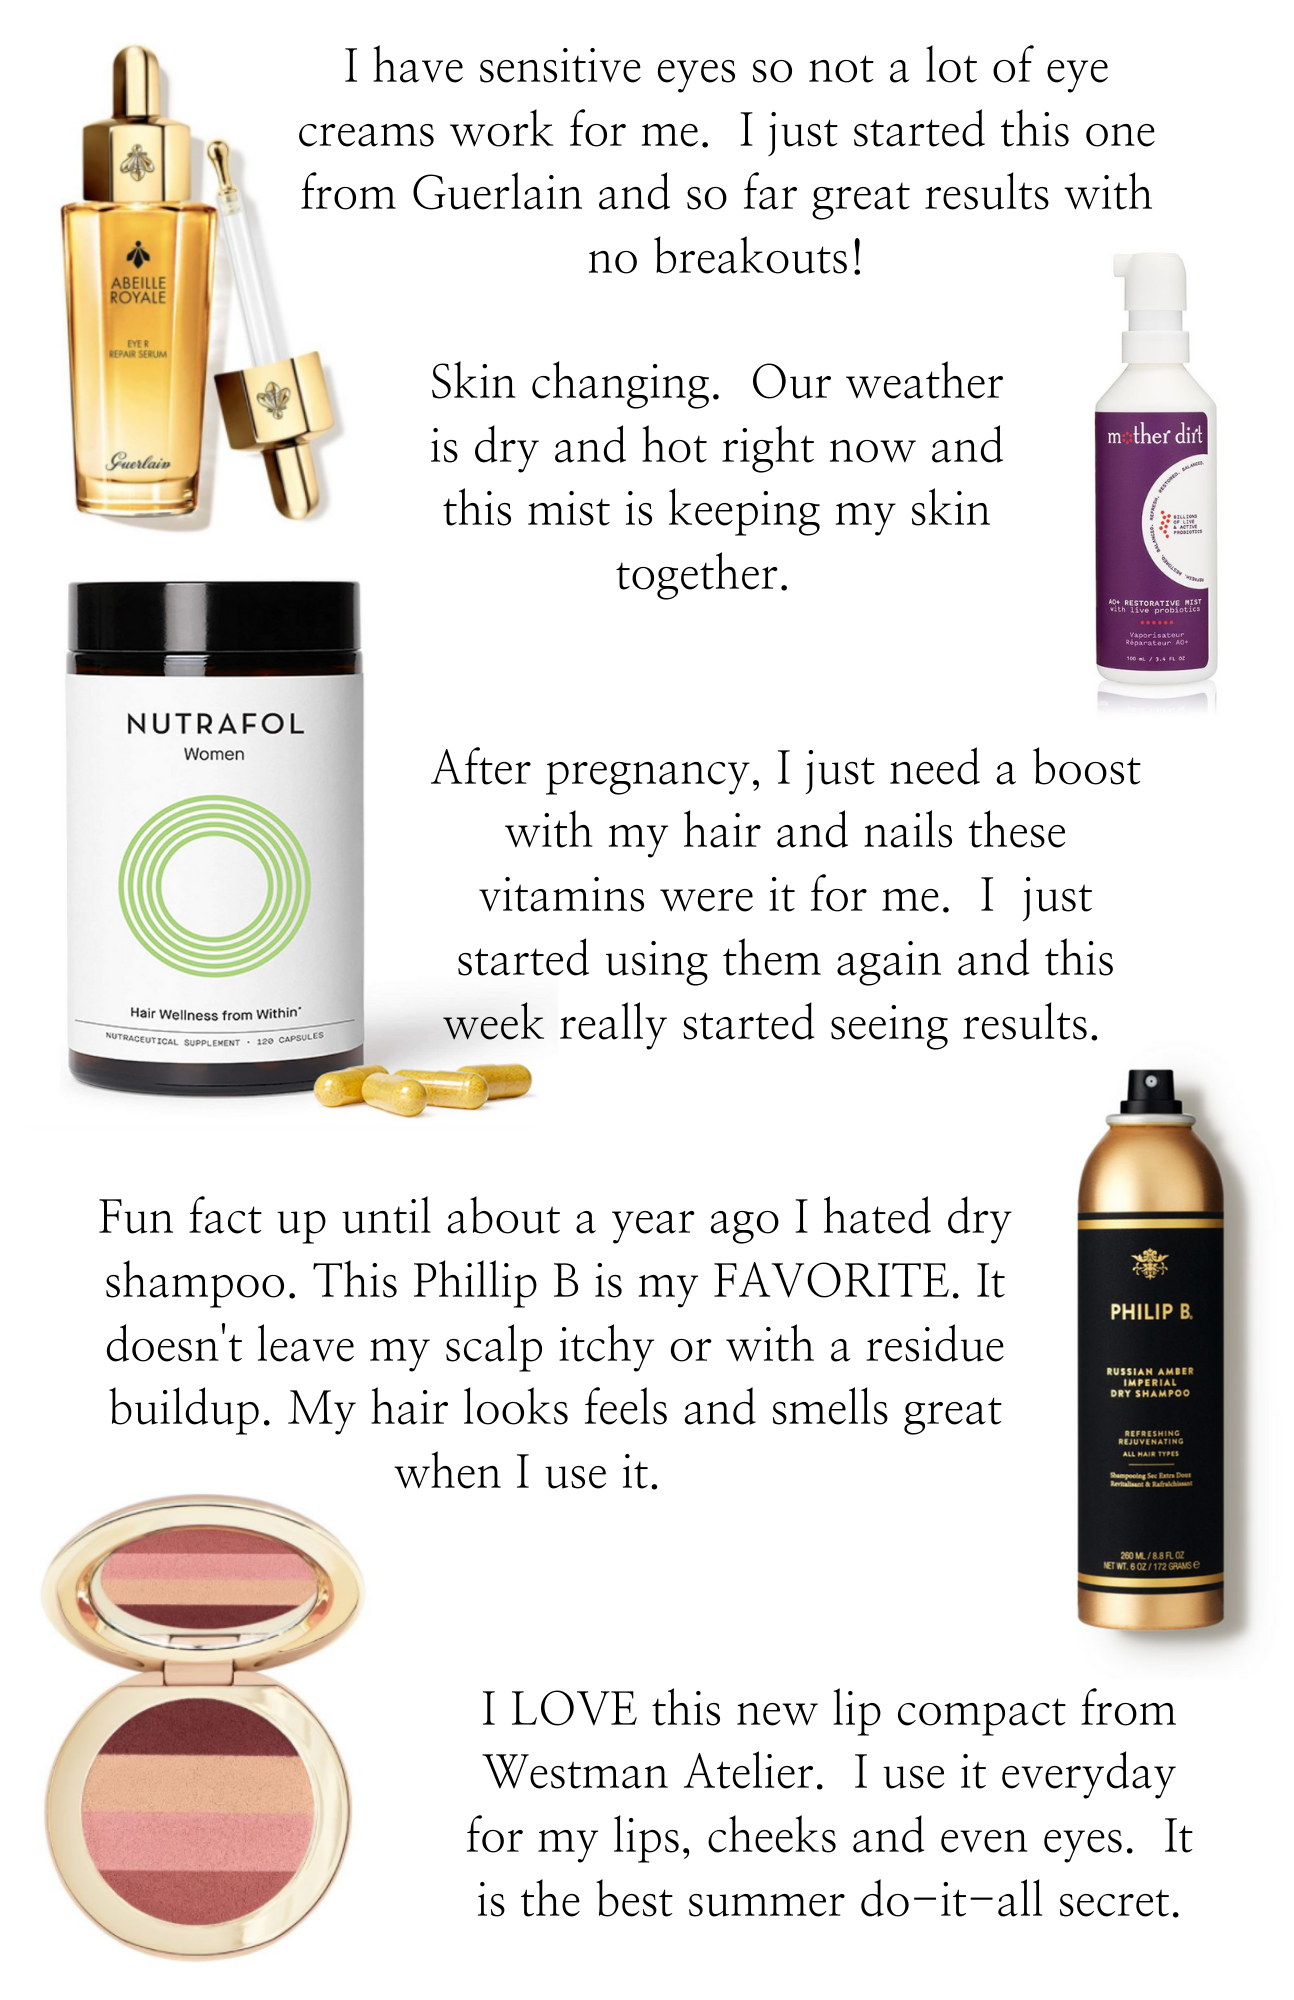 Best Beauty Products by popular Monterey beauty blog, Haute Beauty Guide: collage image of Abeille Royale Eye repair serum, Mother Dirt facial mist, Nutrafol hair wellness supplements, Philip B. Russian Amber Imperial dry shampoo, and Westman Atelier makeup pallet.